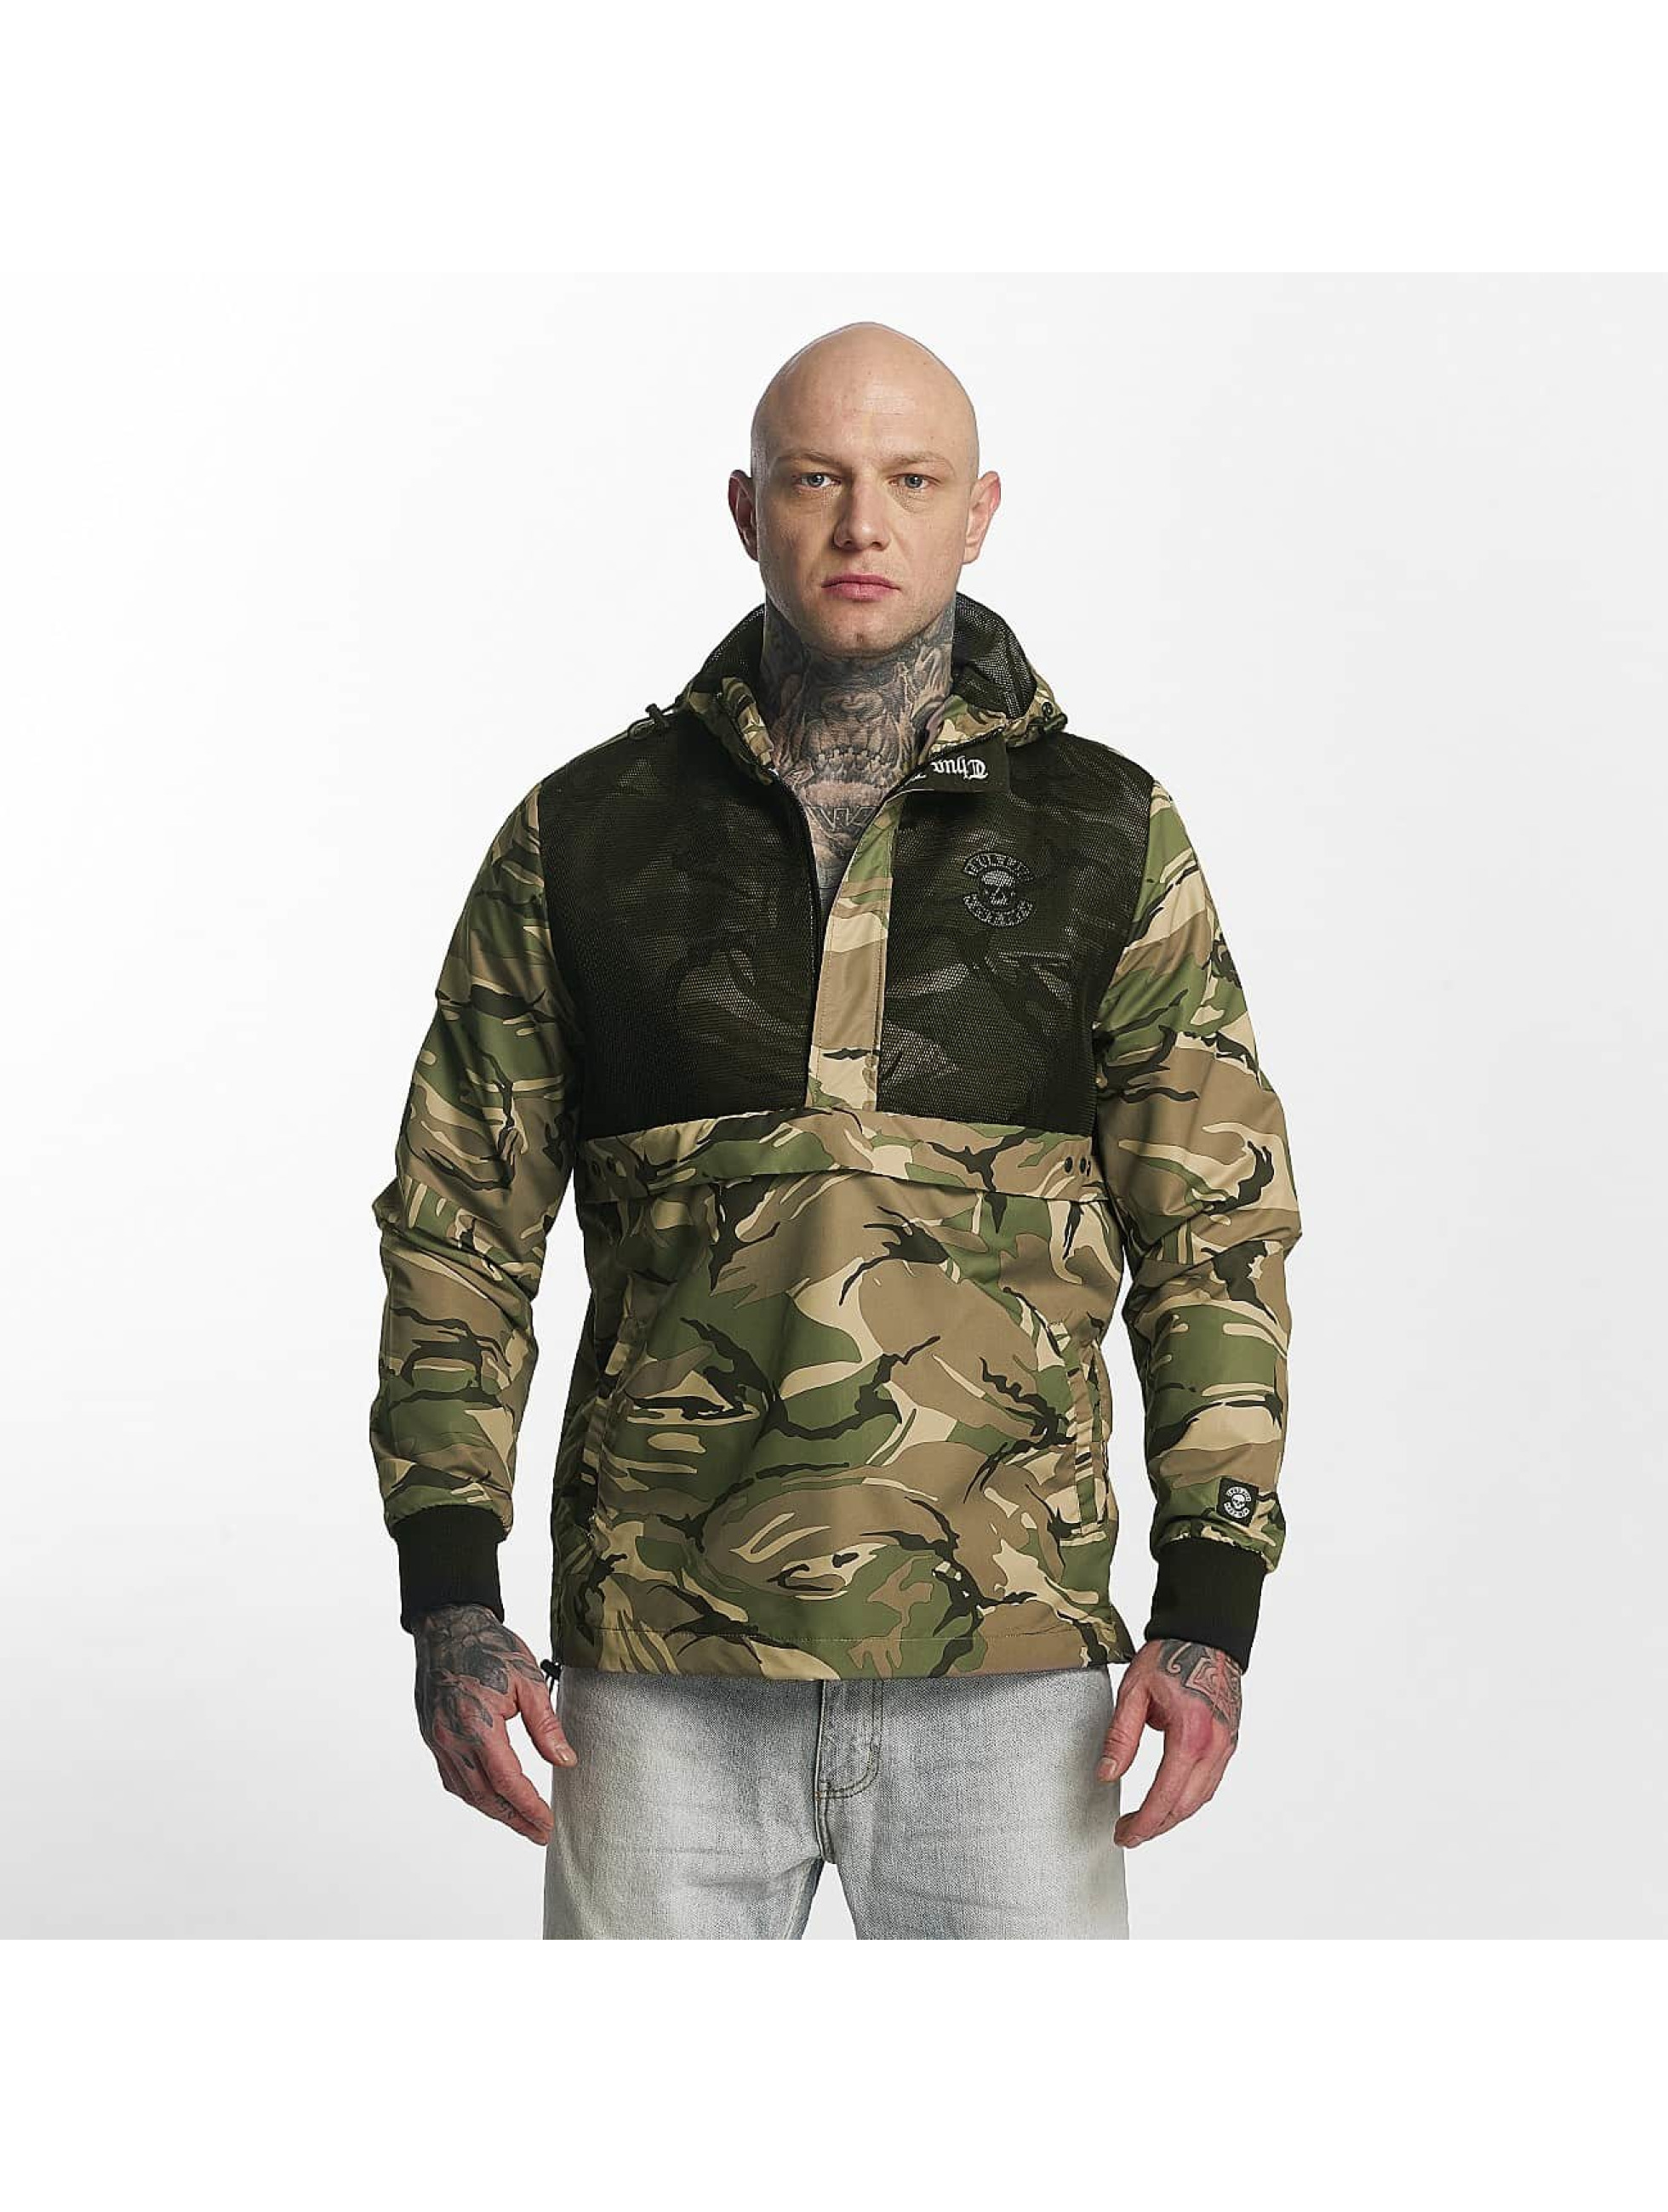 Thug Life / Lightweight Jacket Skin in green 3XL